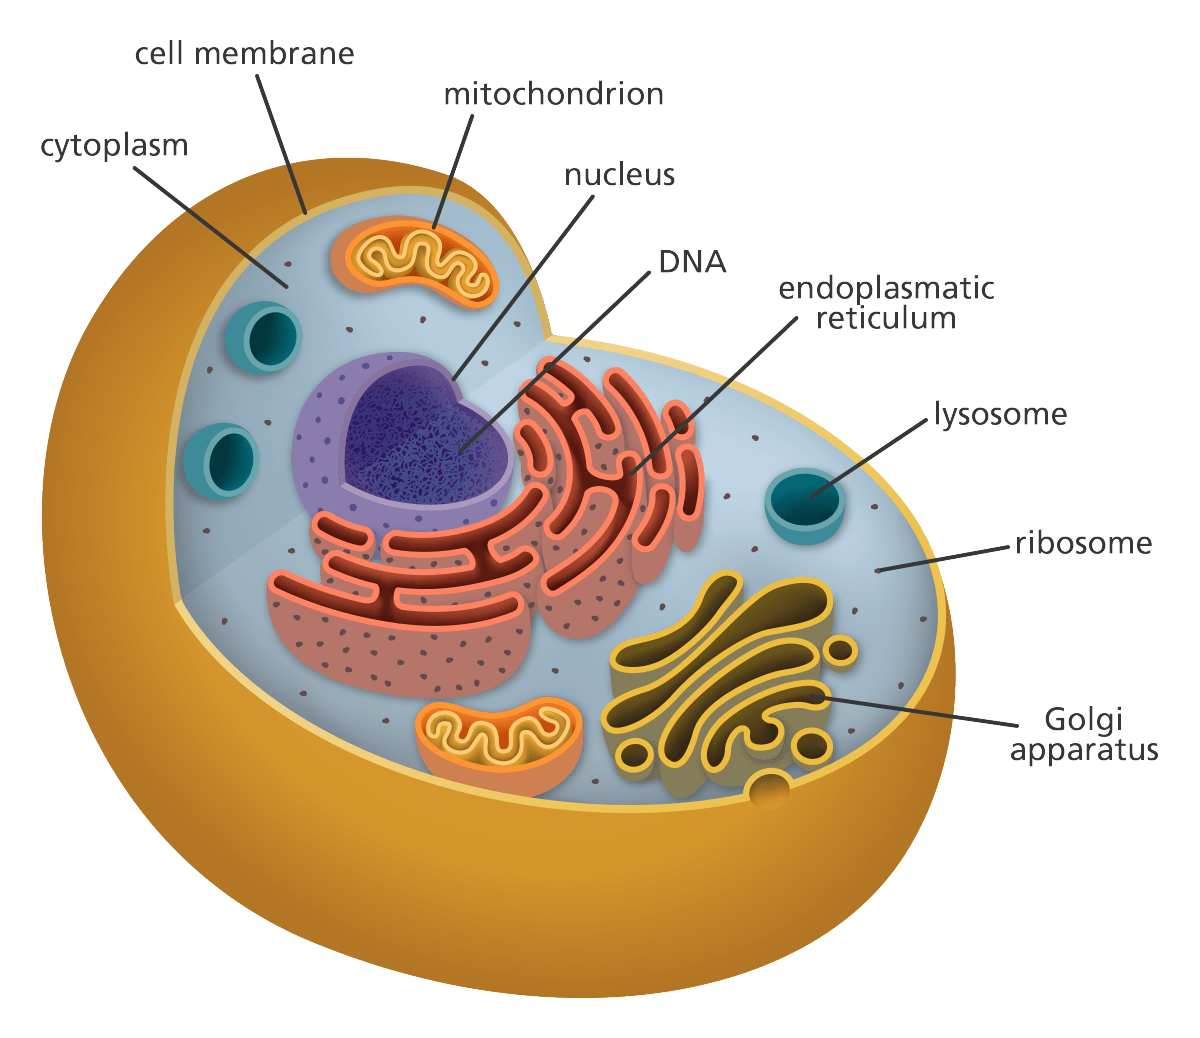 eukaryotic endomembrane system cell diagram air compressor pressure switch wiring labels